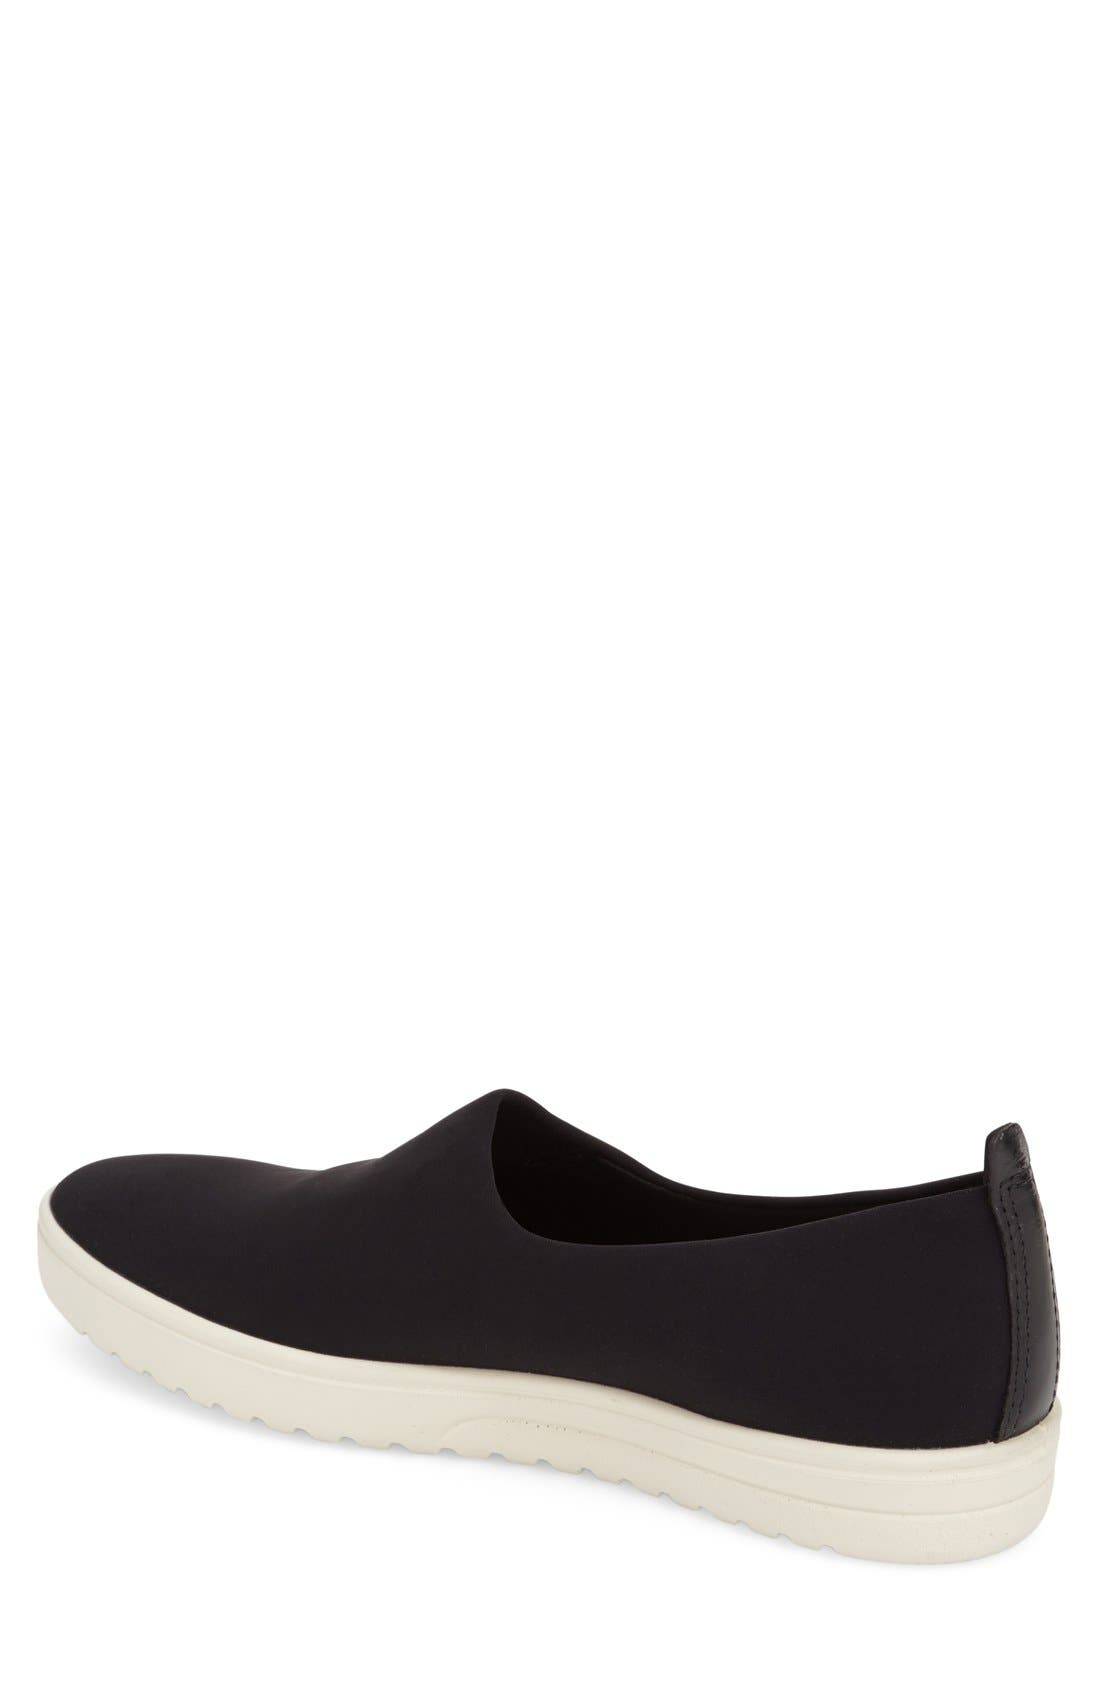 'Fara' Slip-On Sneaker,                             Alternate thumbnail 5, color,